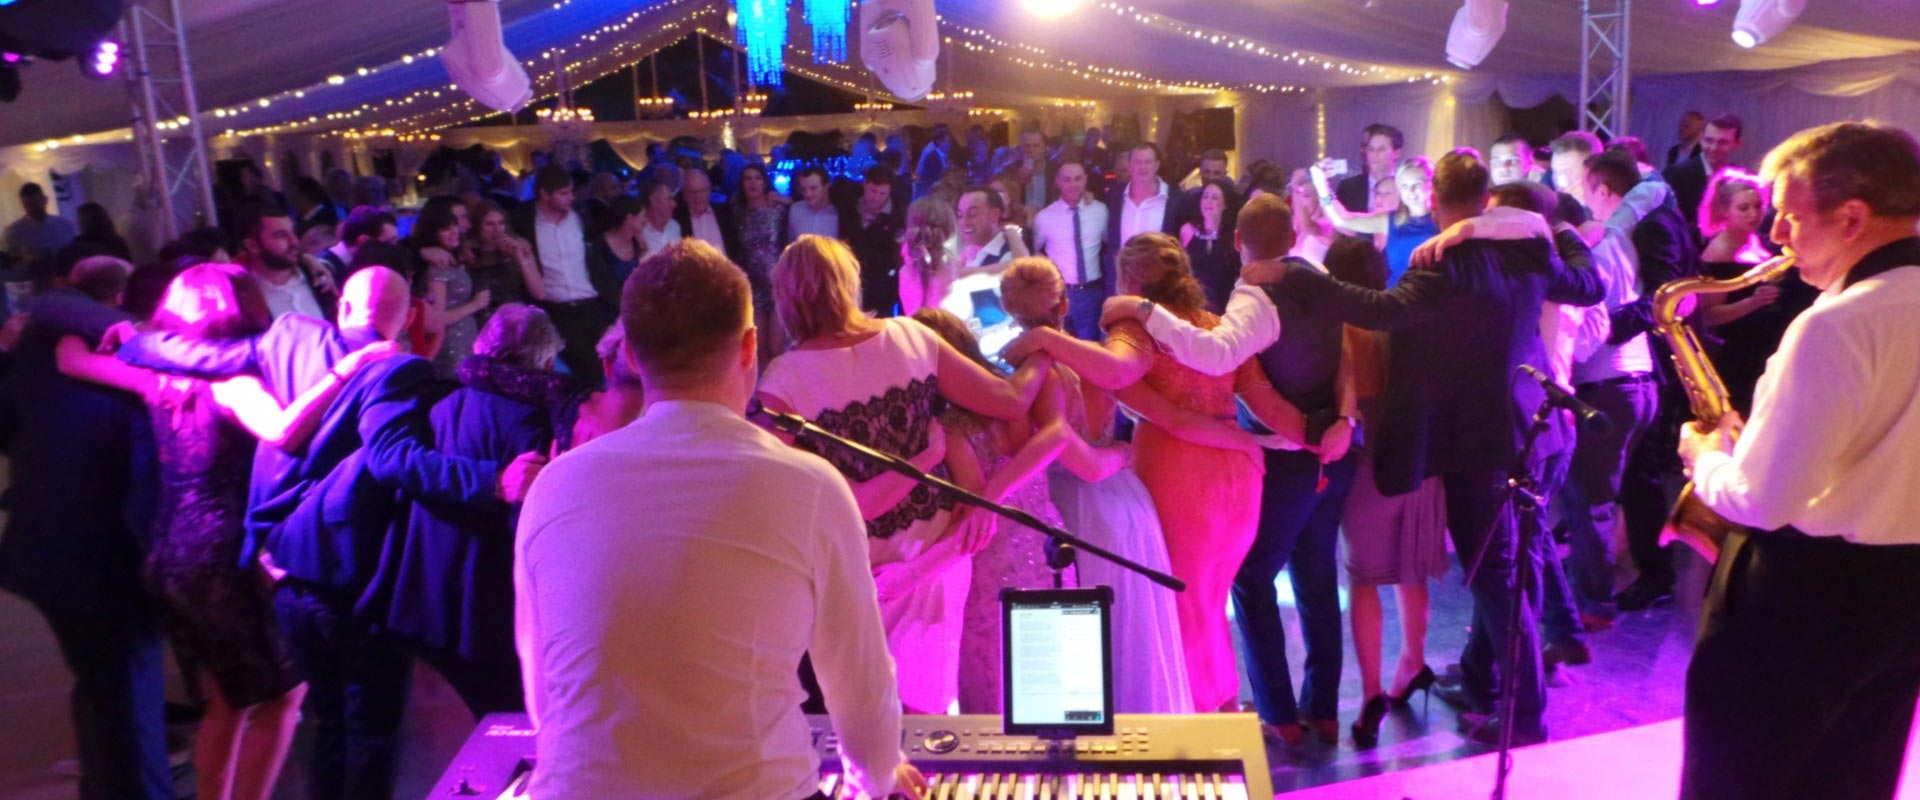 Wedding Band Warwickshire - Carl Sinclair